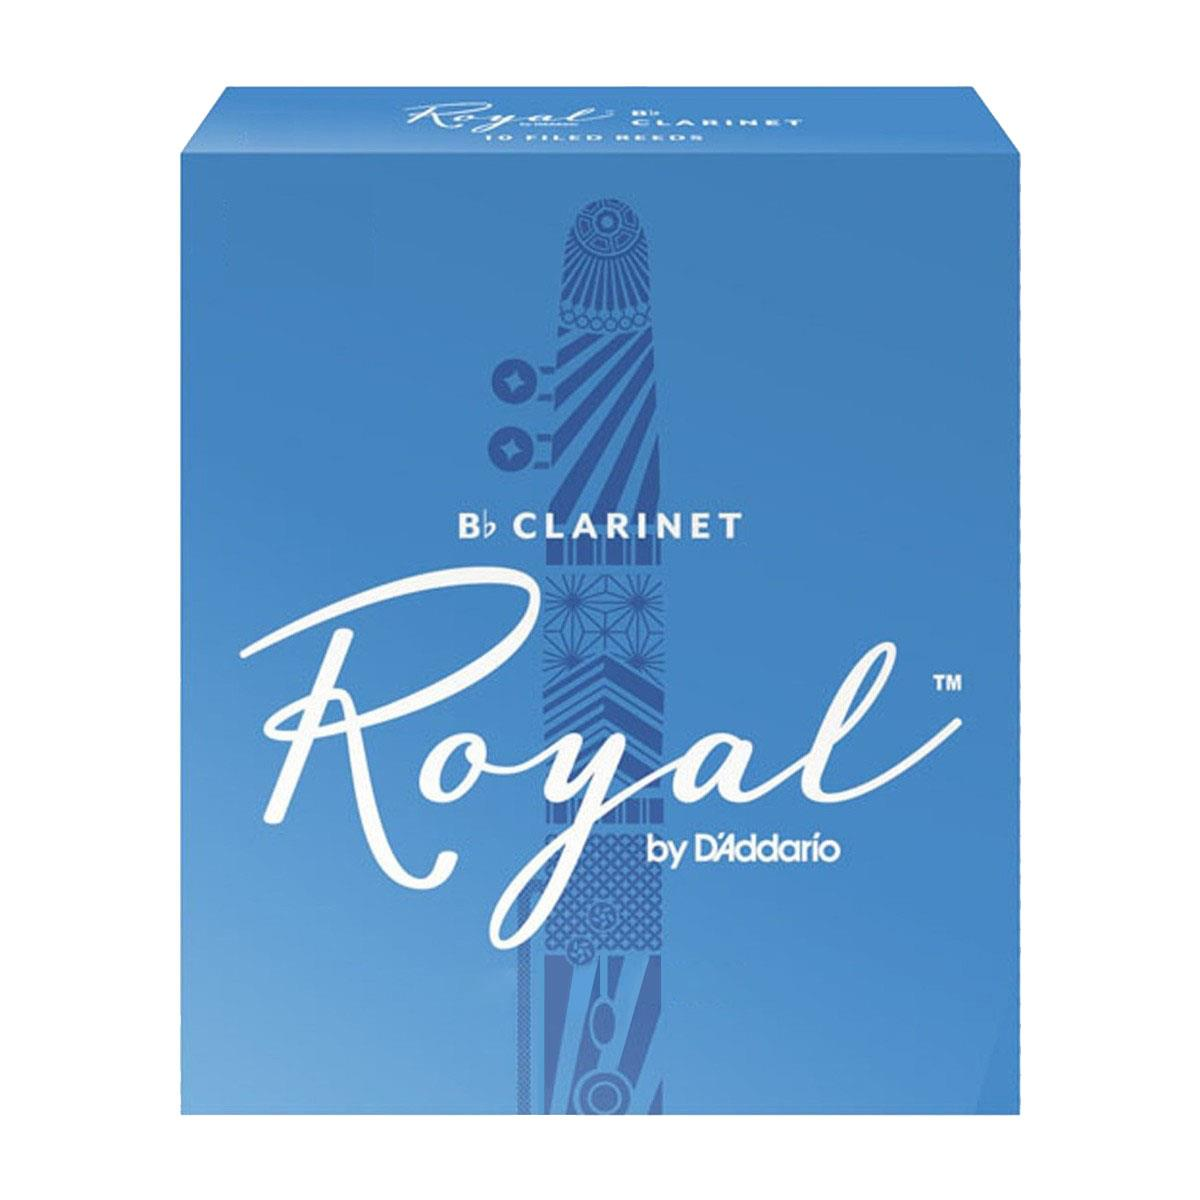 Image of D'Addario Woodwind Royal RCB1030 Bb Clarinet Reeds Strength 3 10-pack 0046716533258